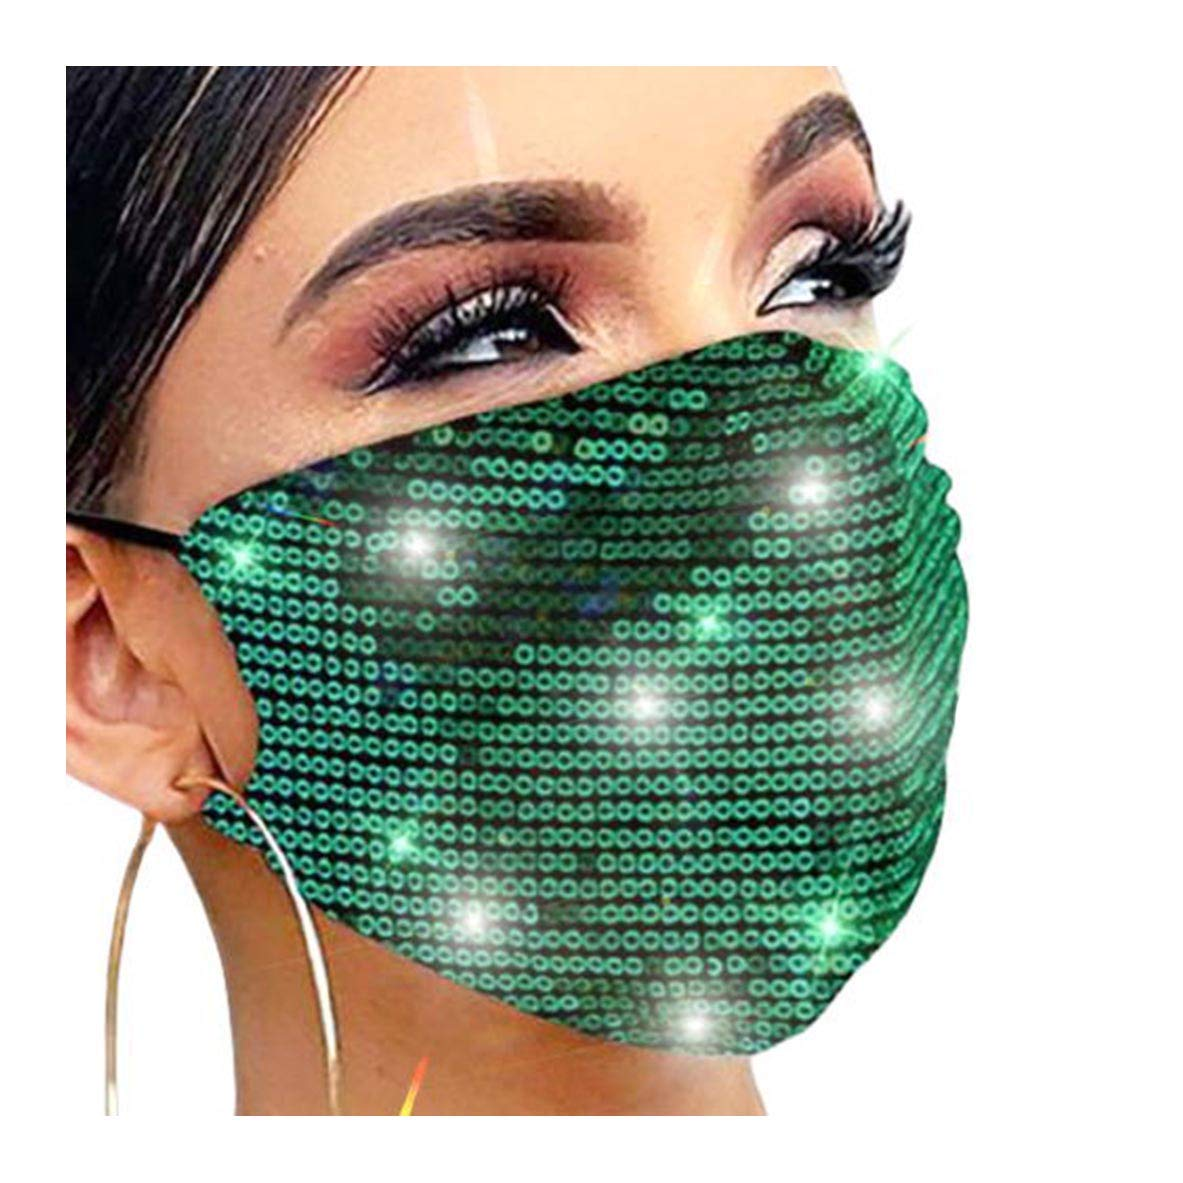 Fstrend Sparkly Mask Green Sequins Costume Masquerade Masks Adjustable Cotton Breathable Reusable Party Night Club Face Covering for Women and Girls